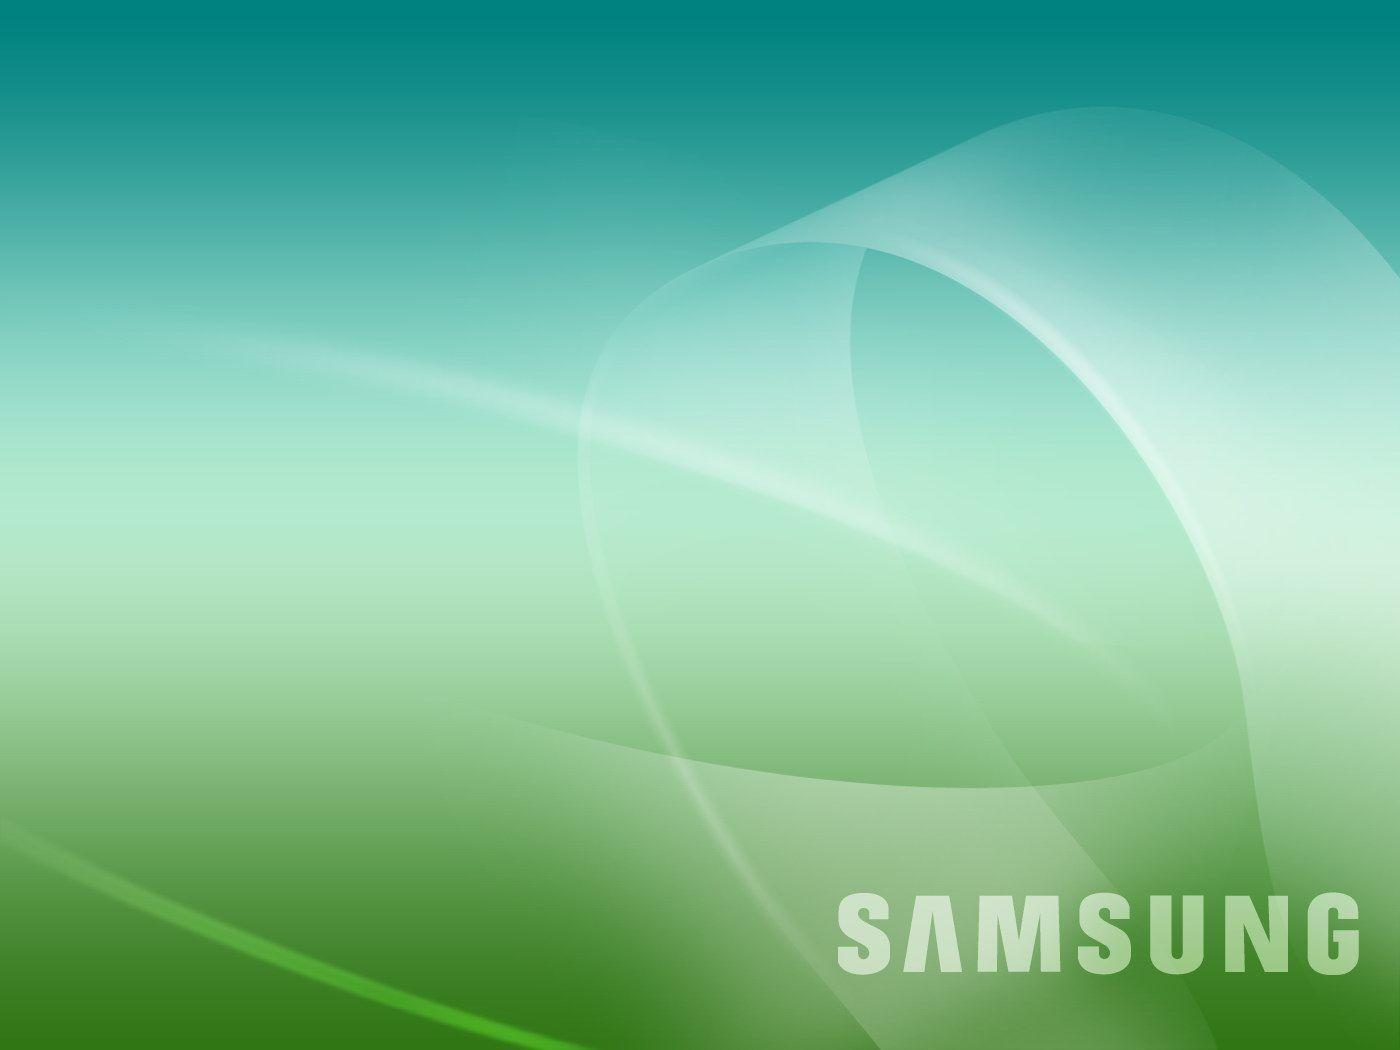 Samsung Wallpapers Gallery - Wallpaper cave